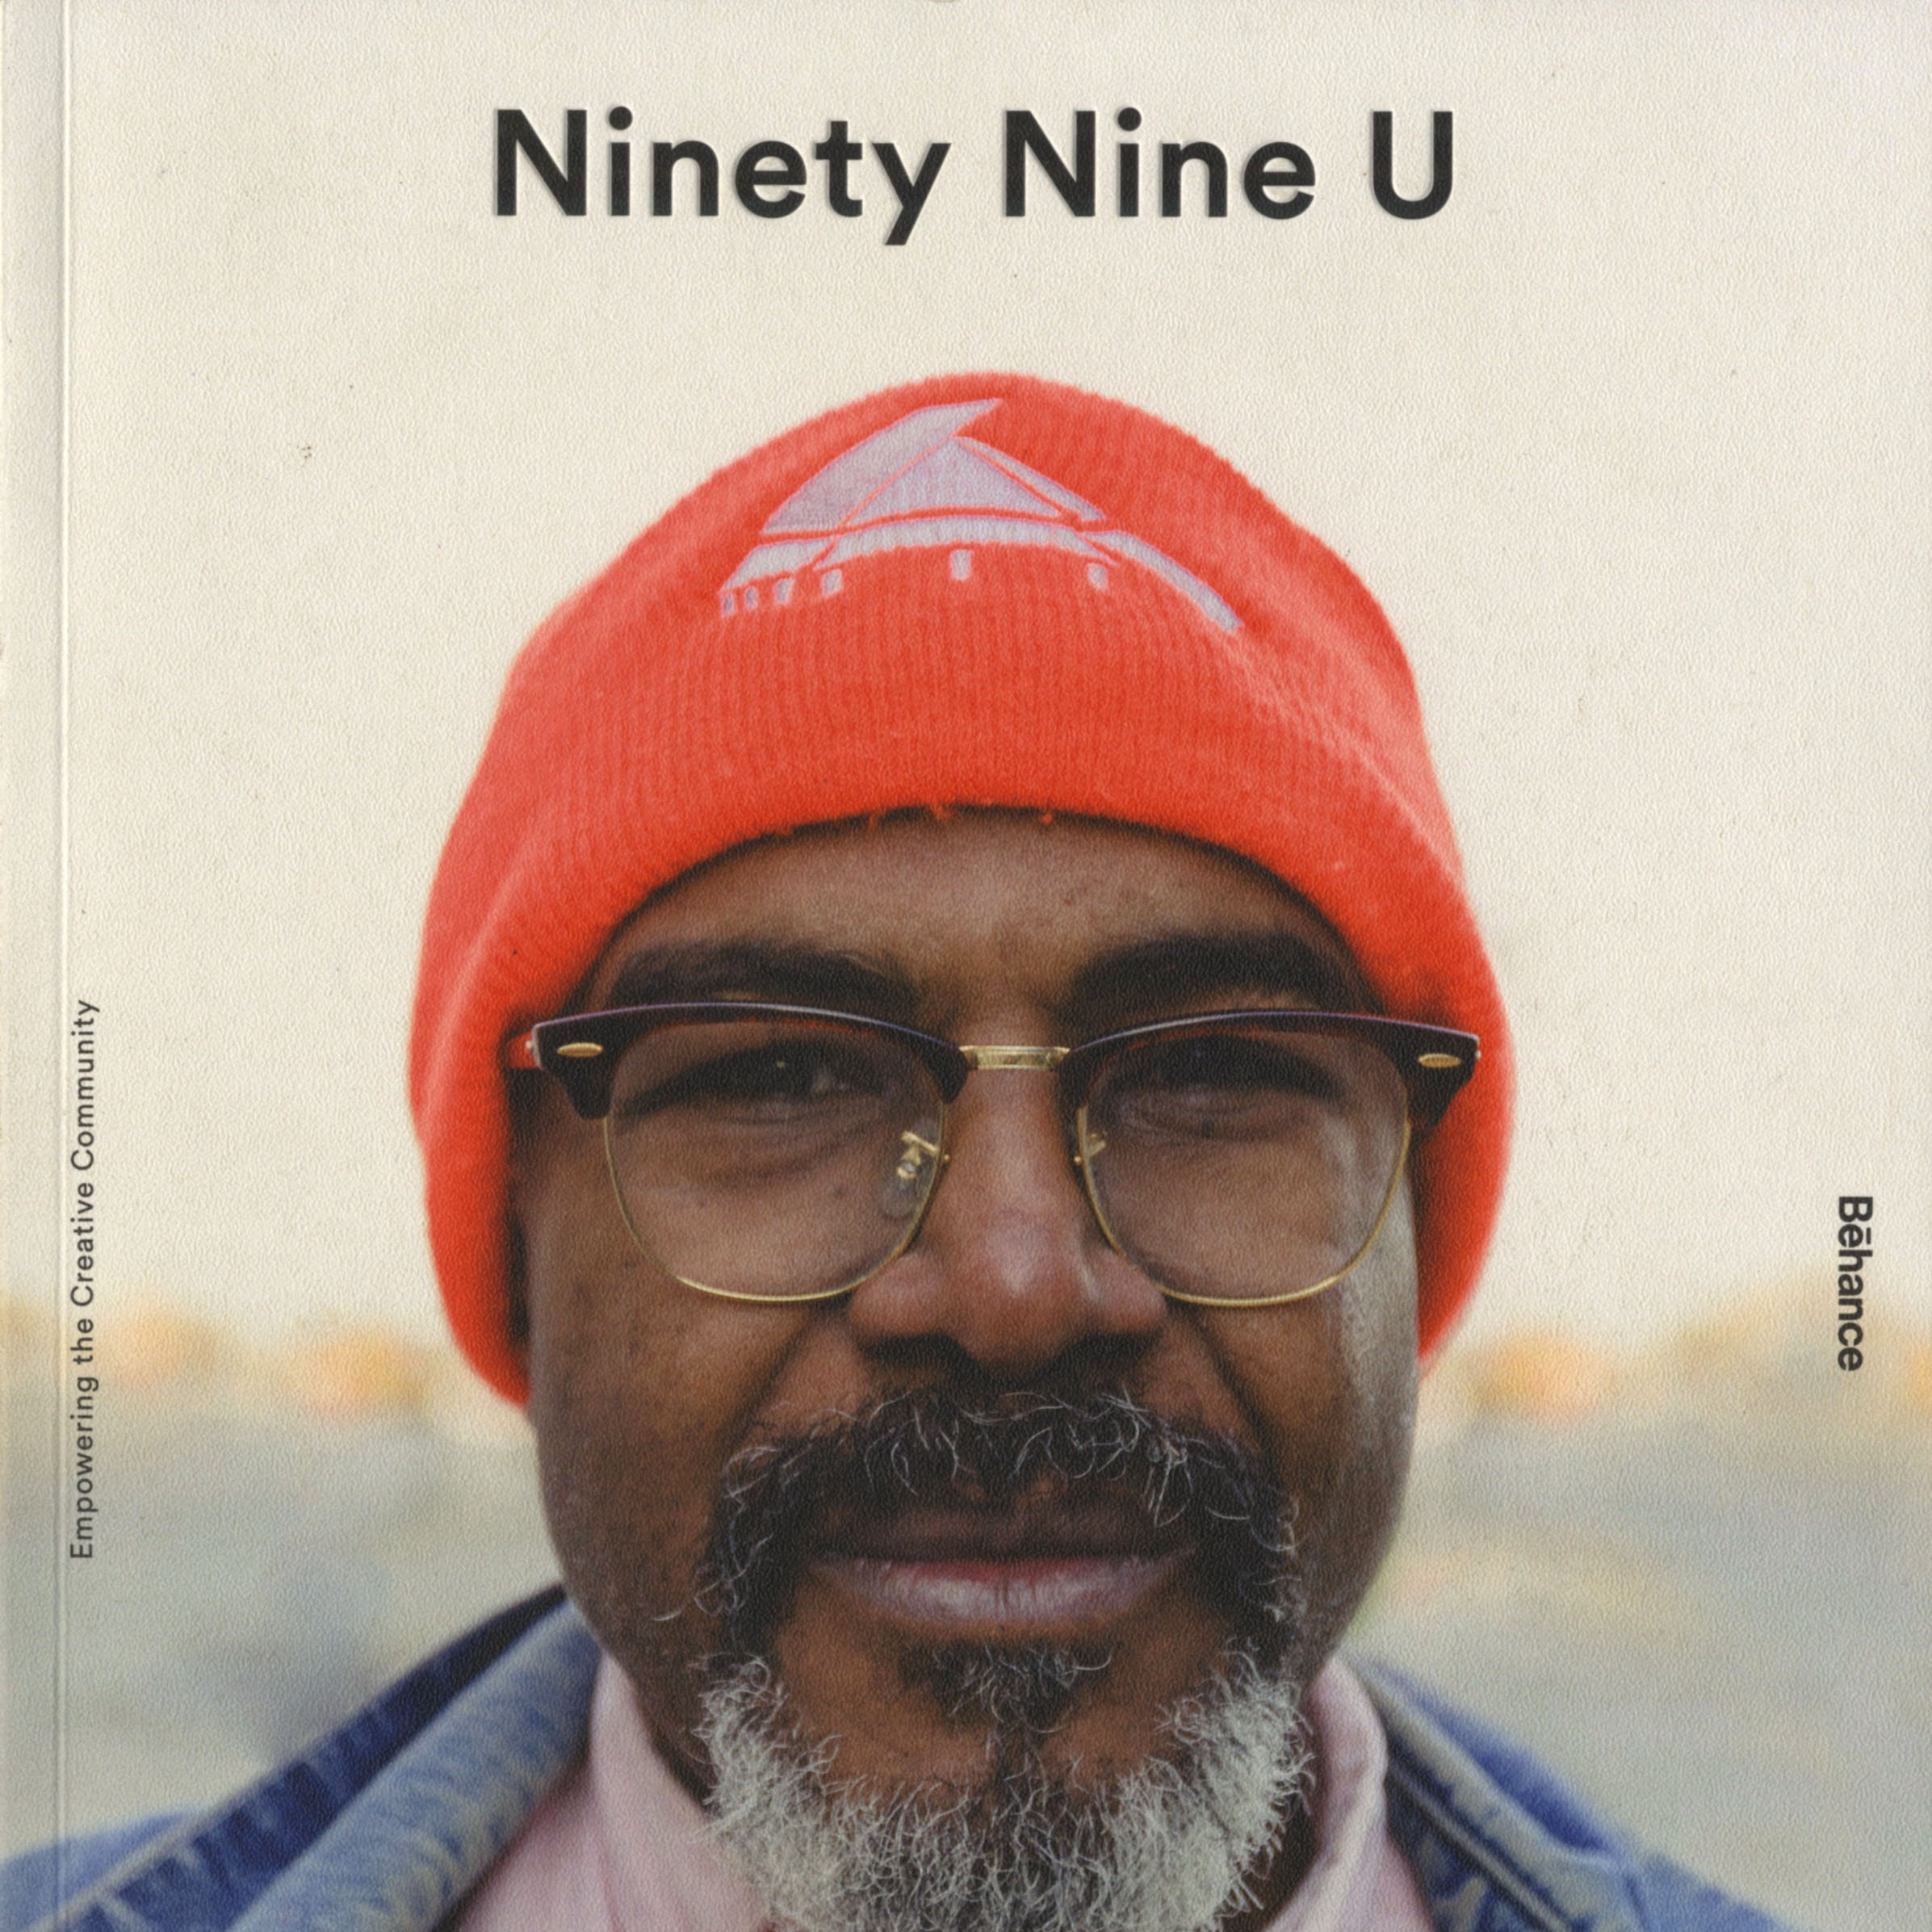 99U, Issue no. 12